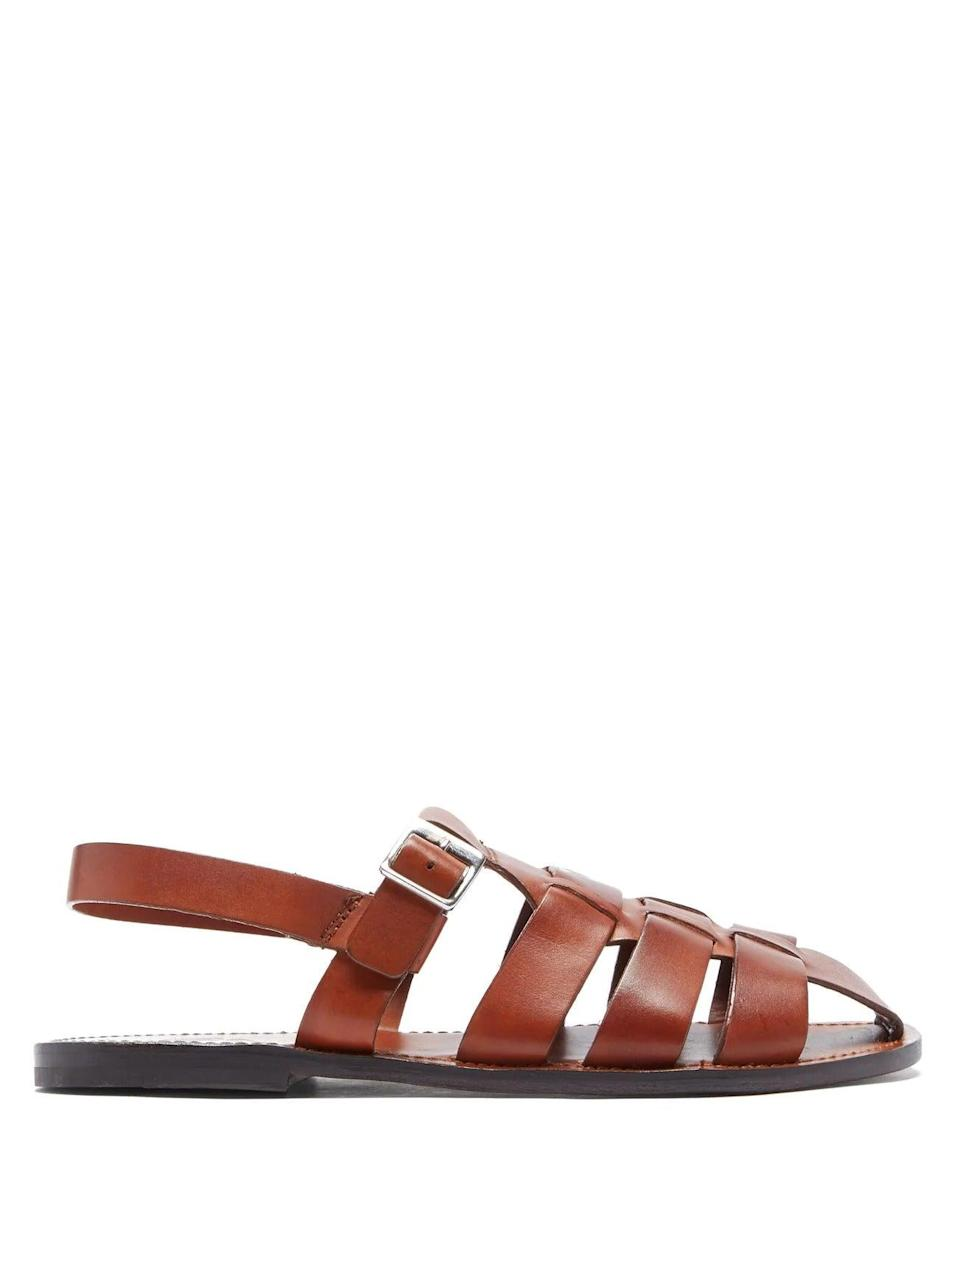 """<br><br><strong>Grenson</strong> Quincy Leather Sandals, $, available at <a href=""""https://www.matchesfashion.com/products/1404757"""" rel=""""nofollow noopener"""" target=""""_blank"""" data-ylk=""""slk:Net-A-Porter"""" class=""""link rapid-noclick-resp"""">Net-A-Porter</a>"""